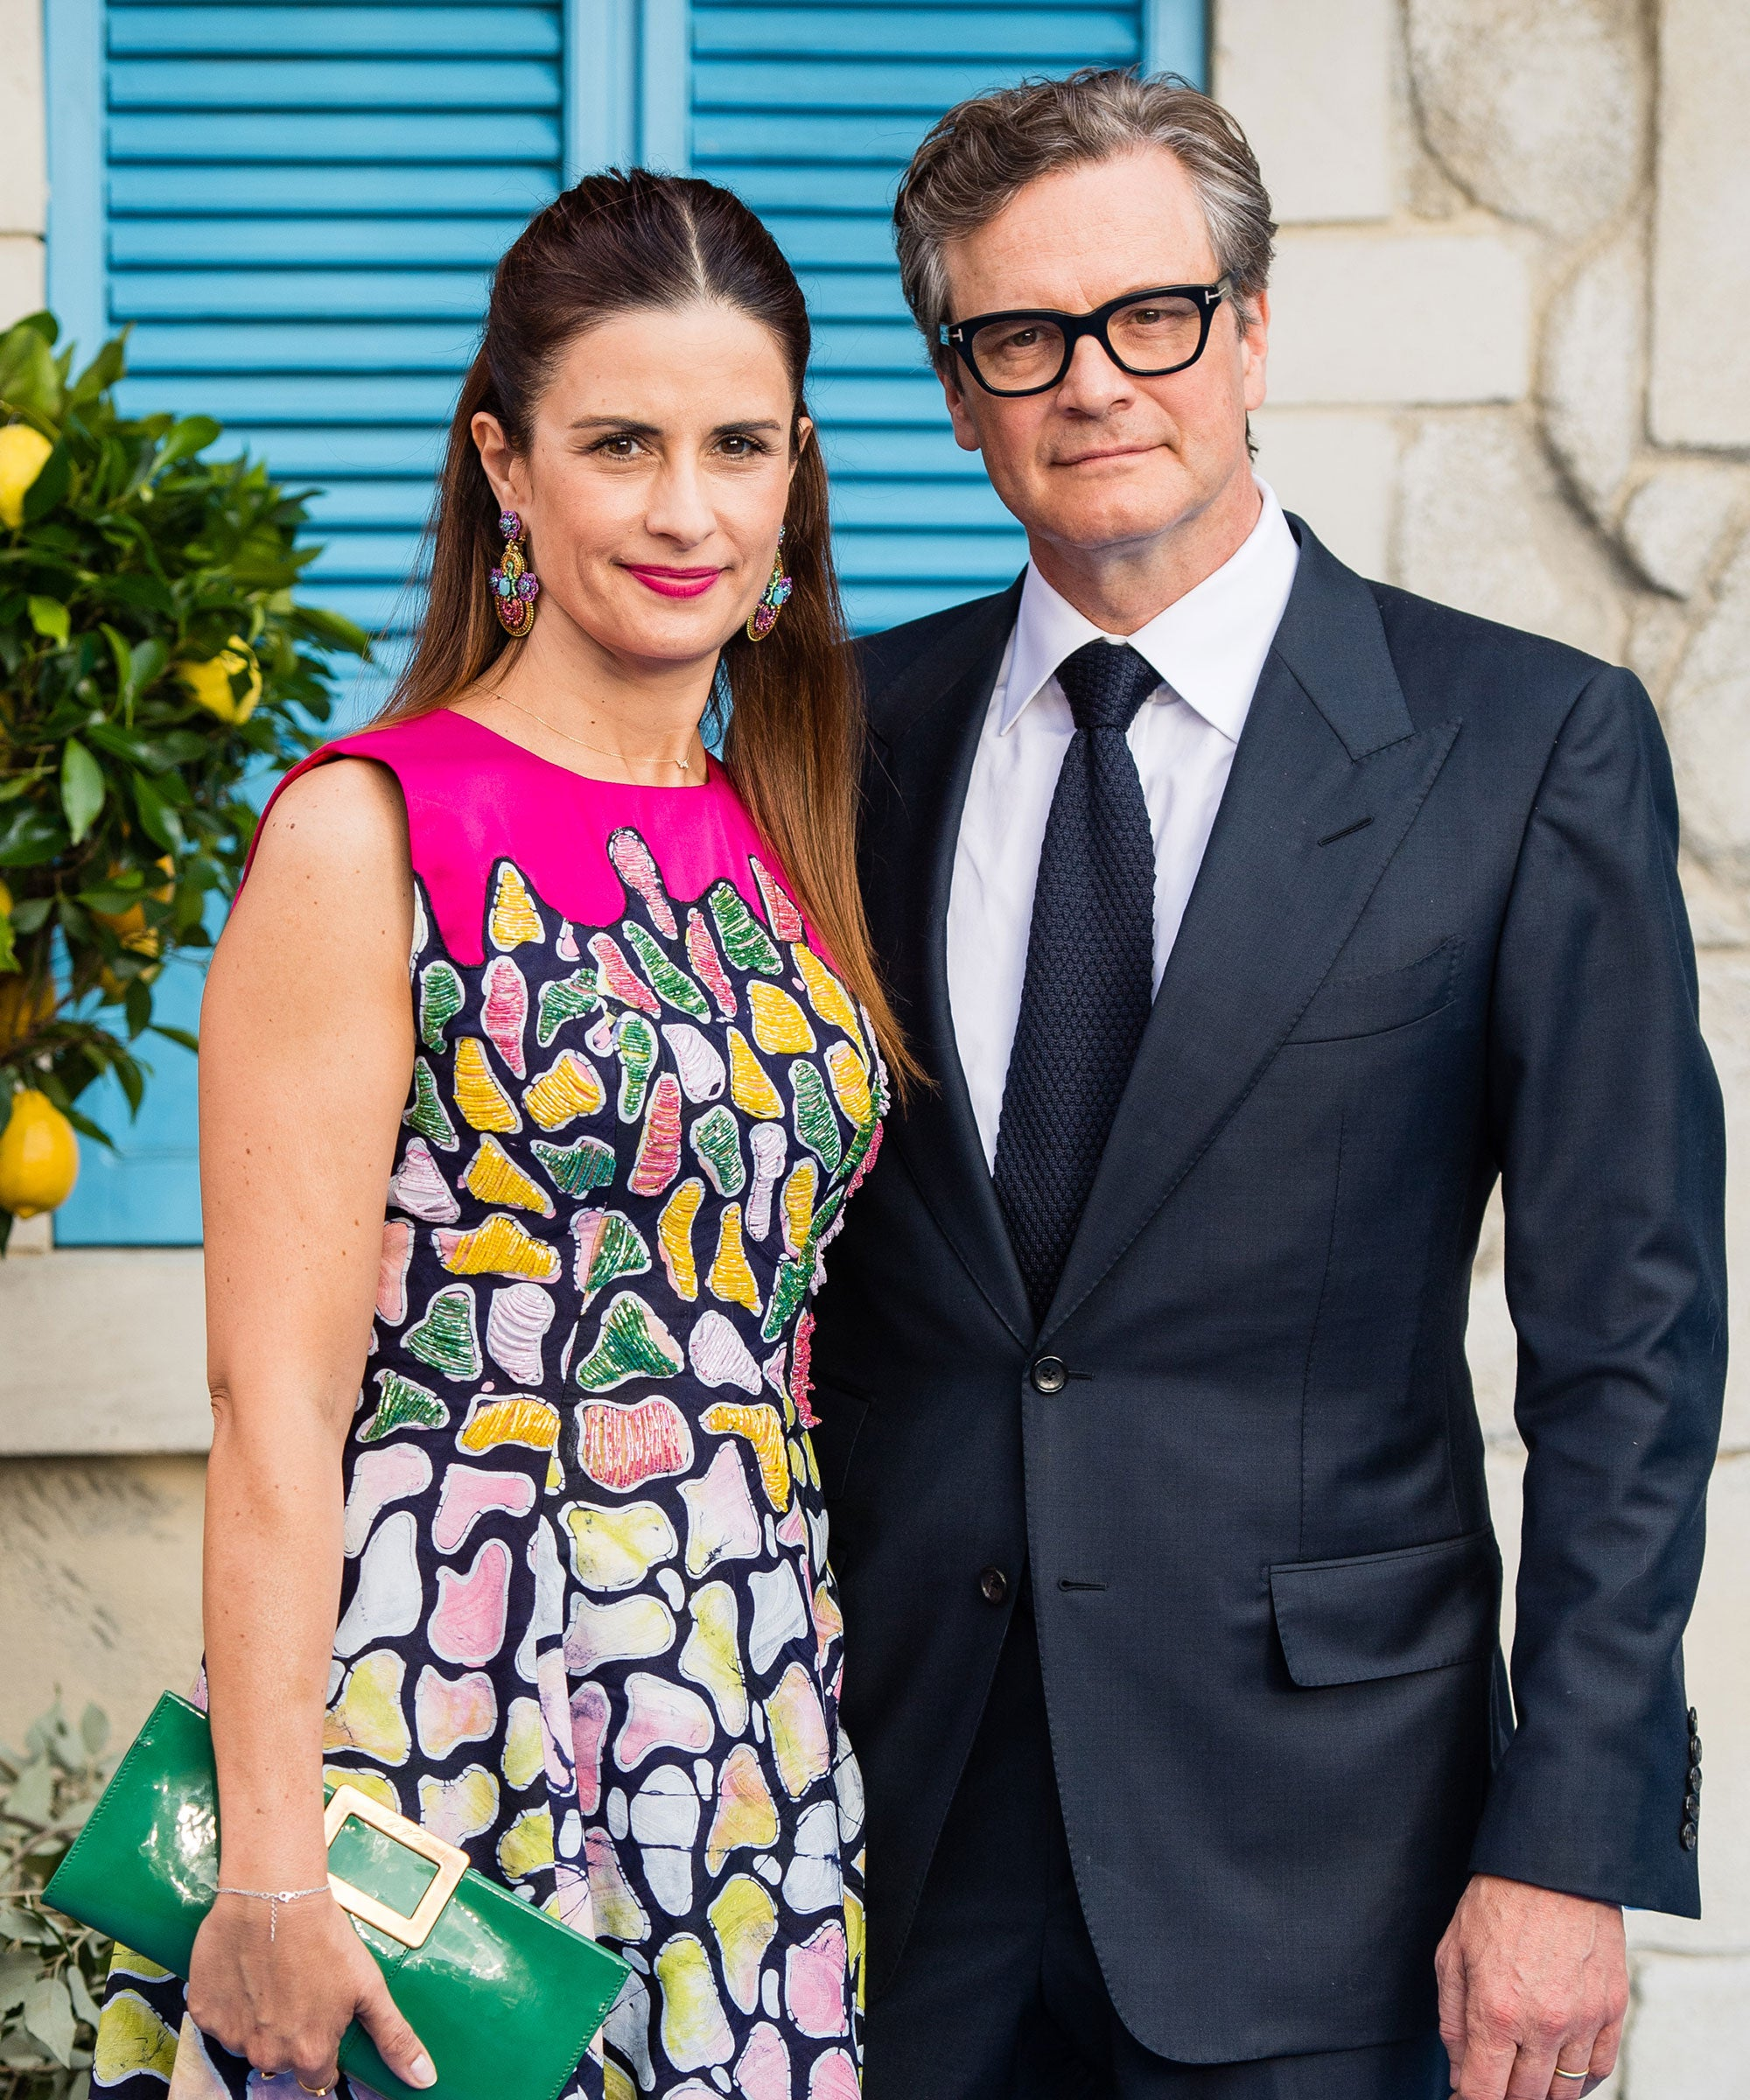 Colin Firth & Wife Split After 22 Years Following Affair & Stalking Case